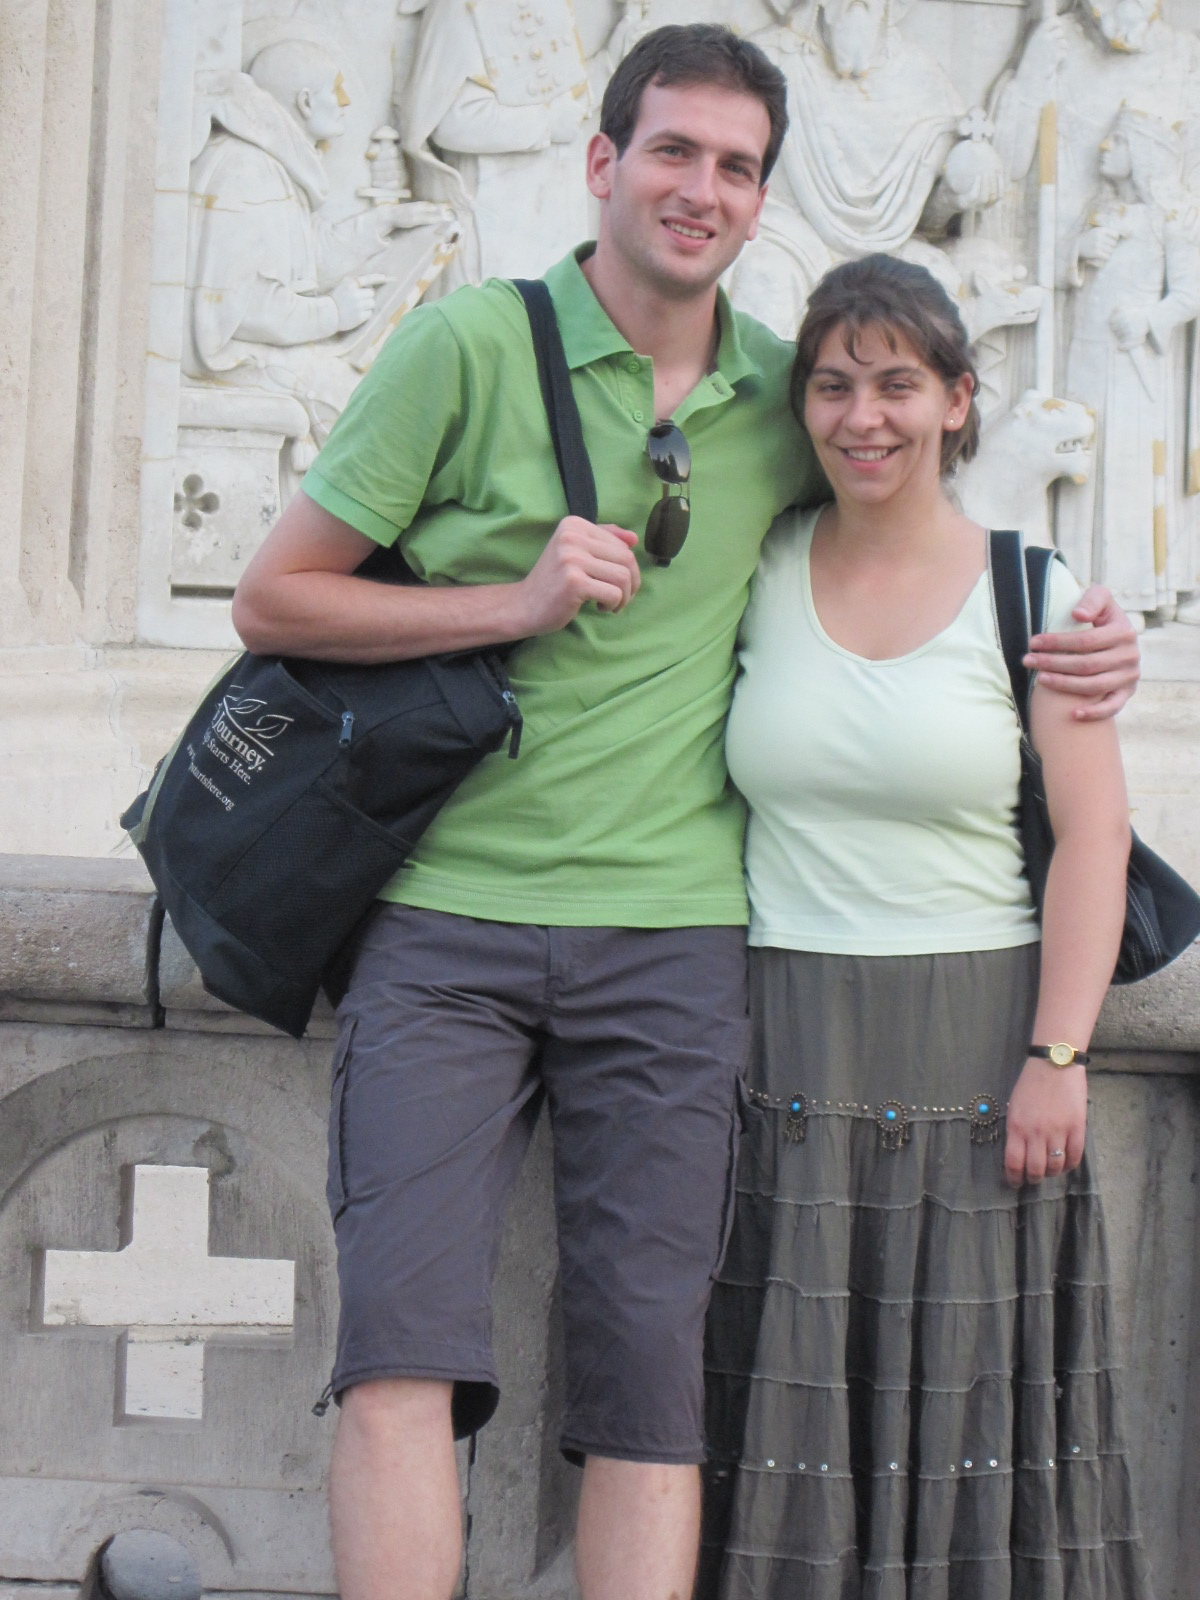 Karoline and Arpad were my personal escorts and protectors in Budapest